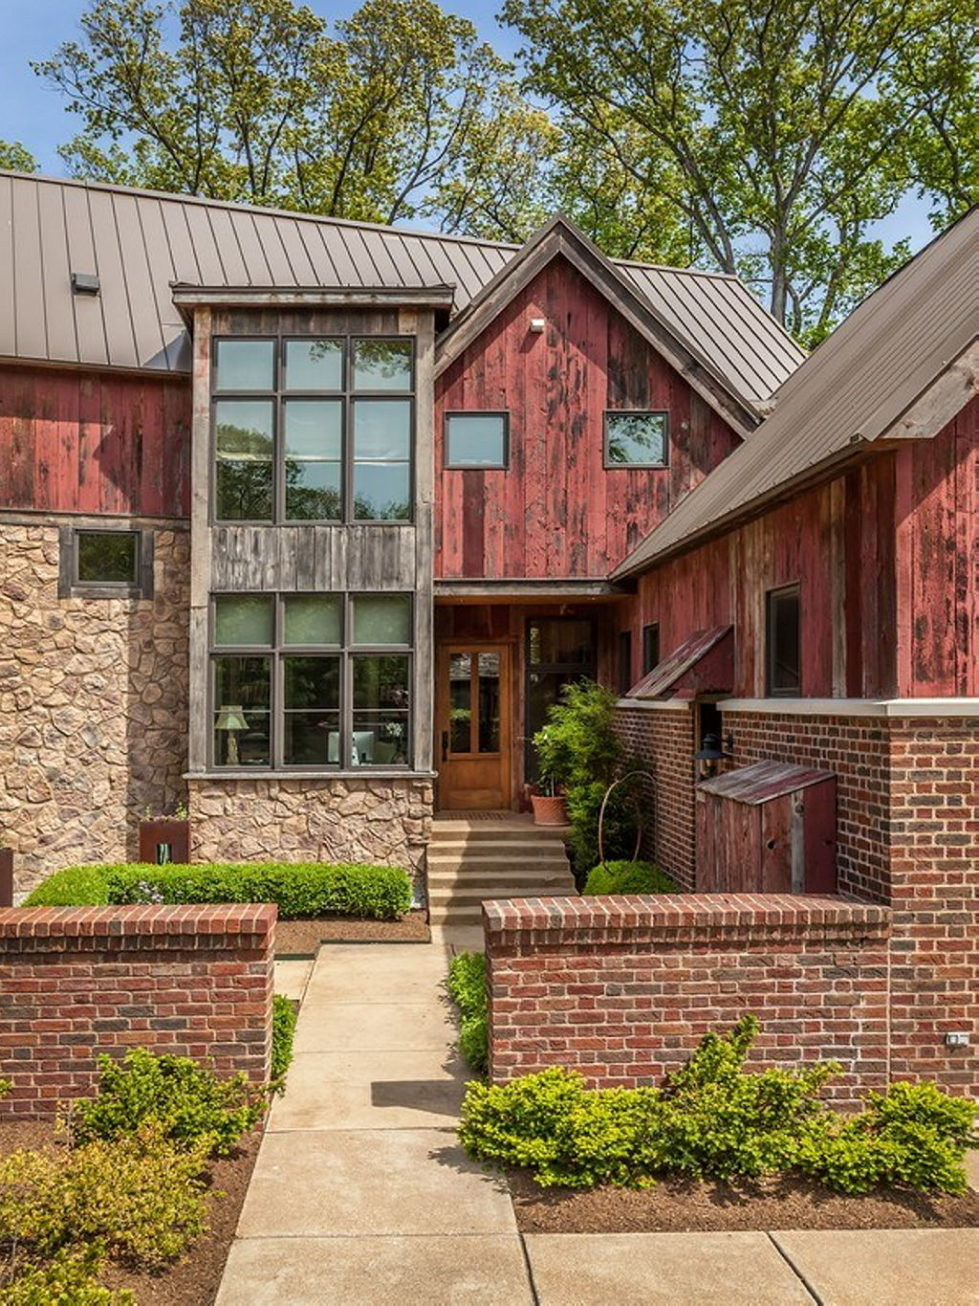 The charming village house in Indianapolis, Indiana, USA is displayed for sale for $ 2.5 million 32